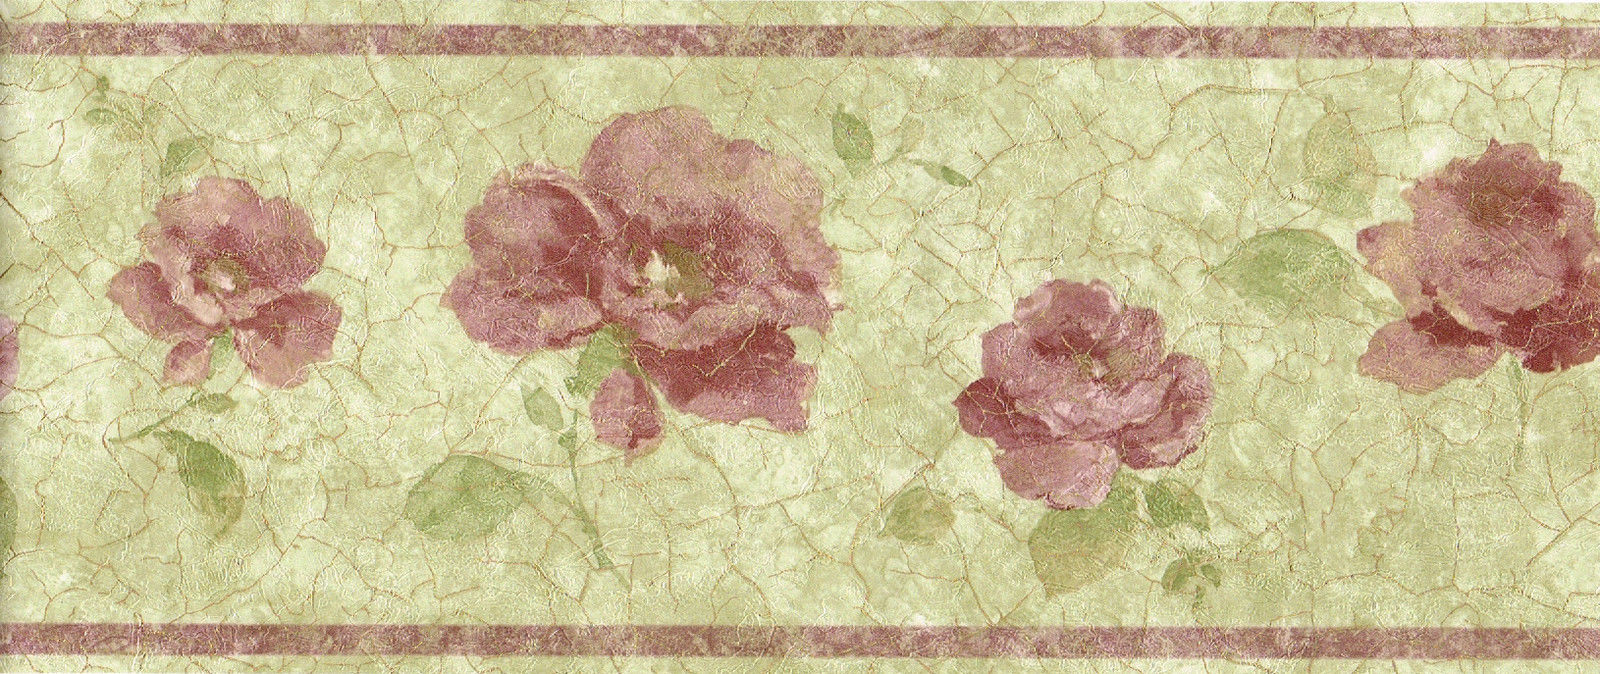 Red Burgundy Gold Flower Floral Wallpaper Wall Border 1600x674